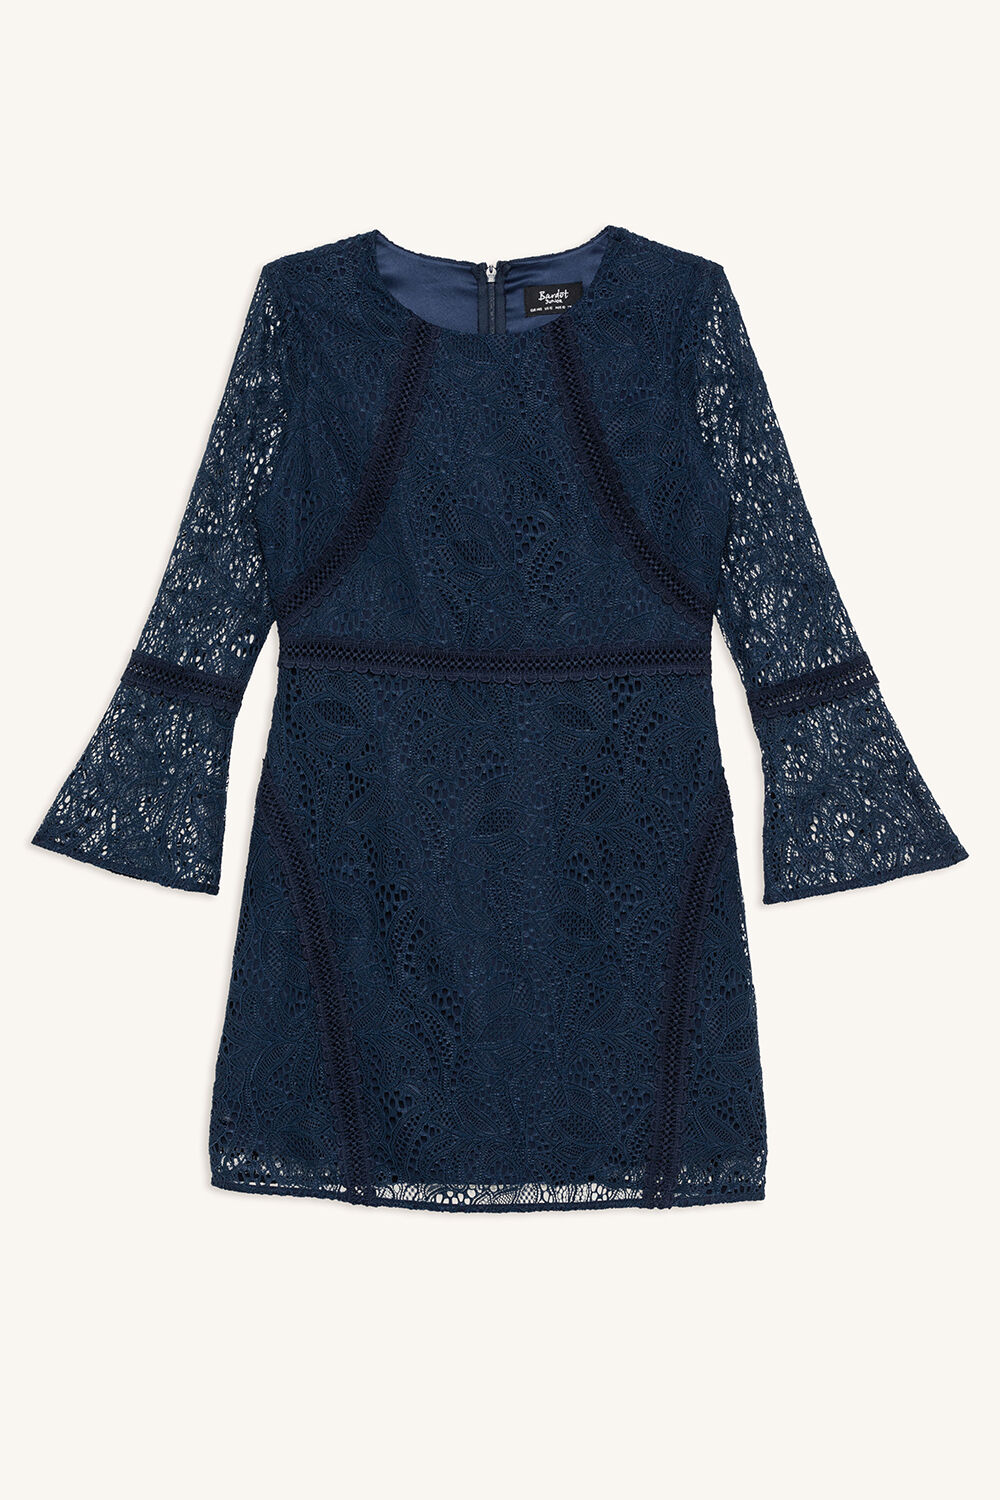 MONROE DRESS in colour MARITIME BLUE